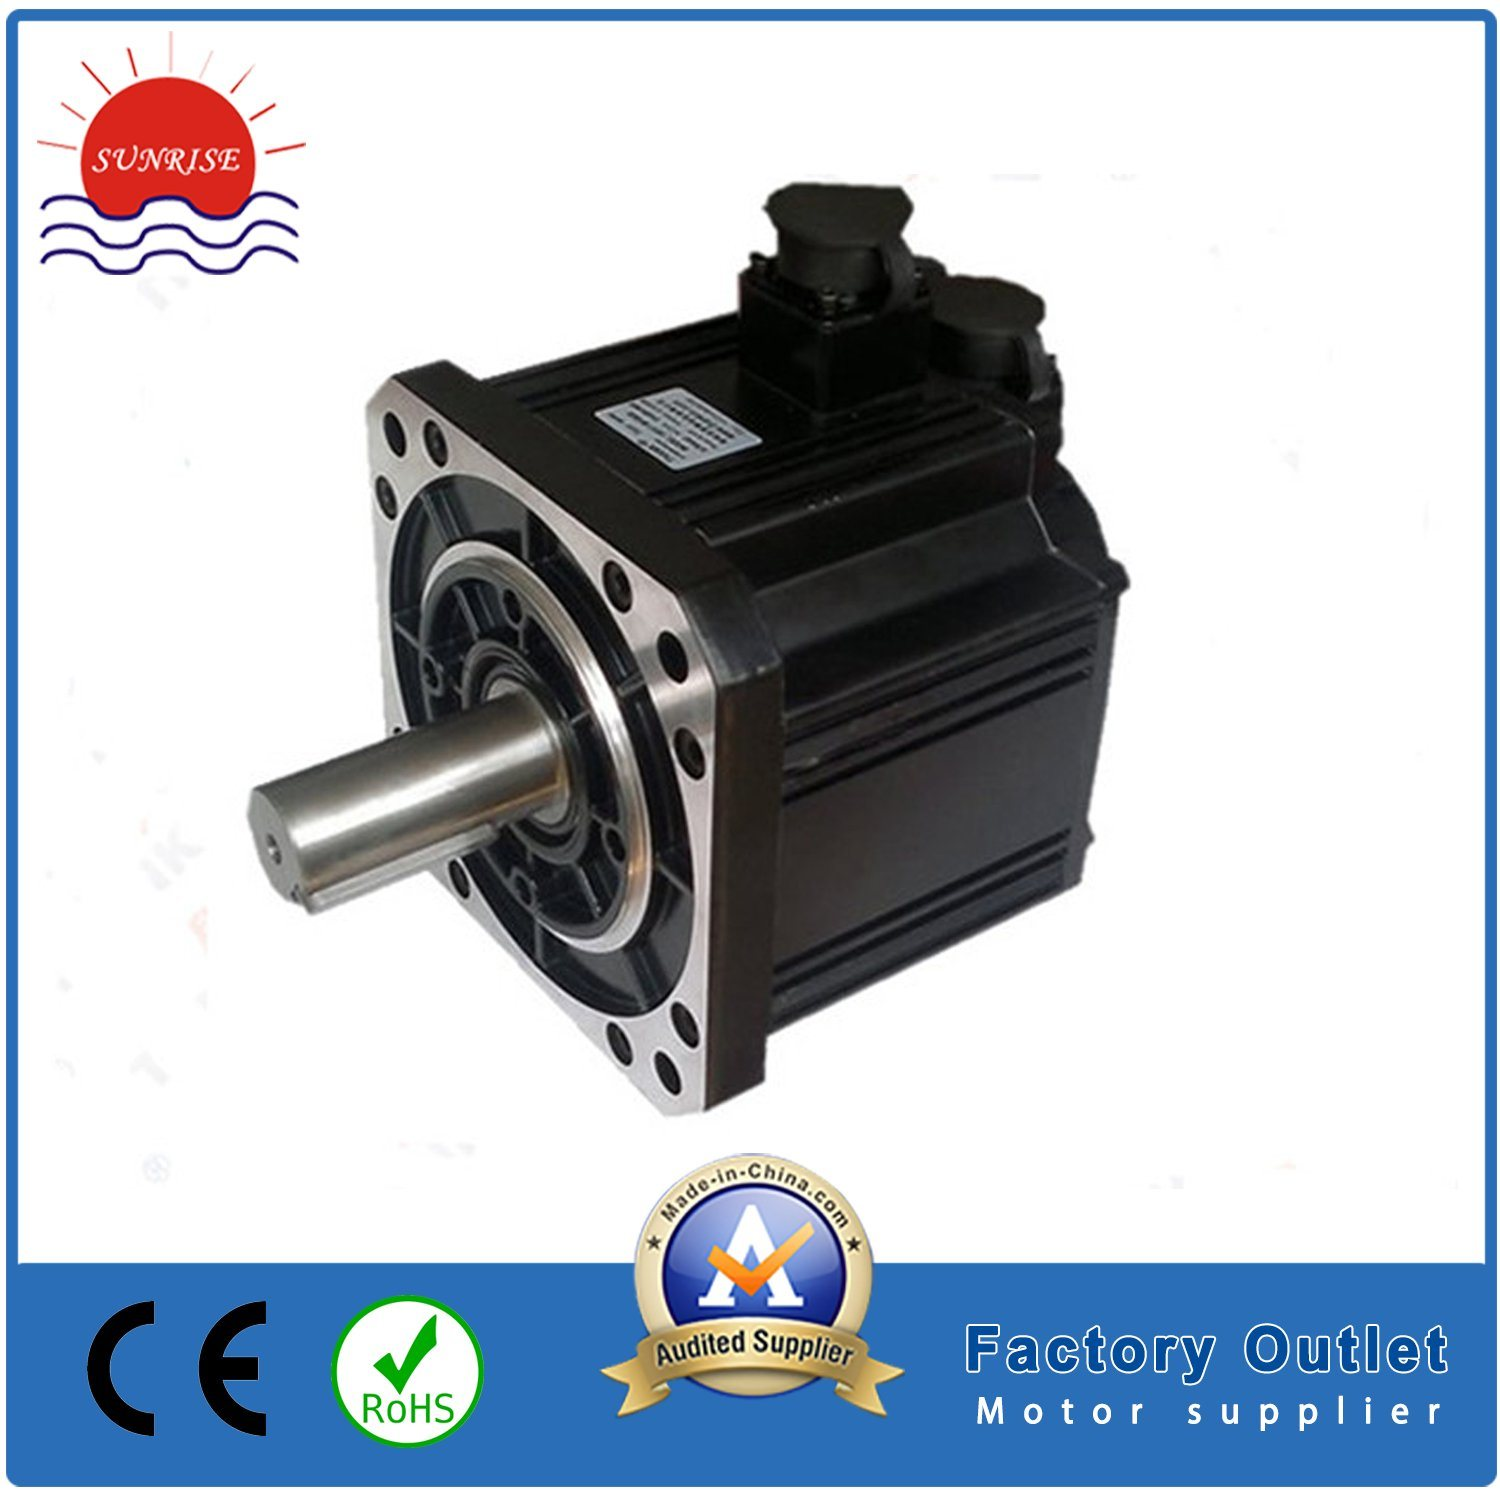 [Hot Item] 180st-M20015 2500CPR 3000W 11A Brushless AC Motor